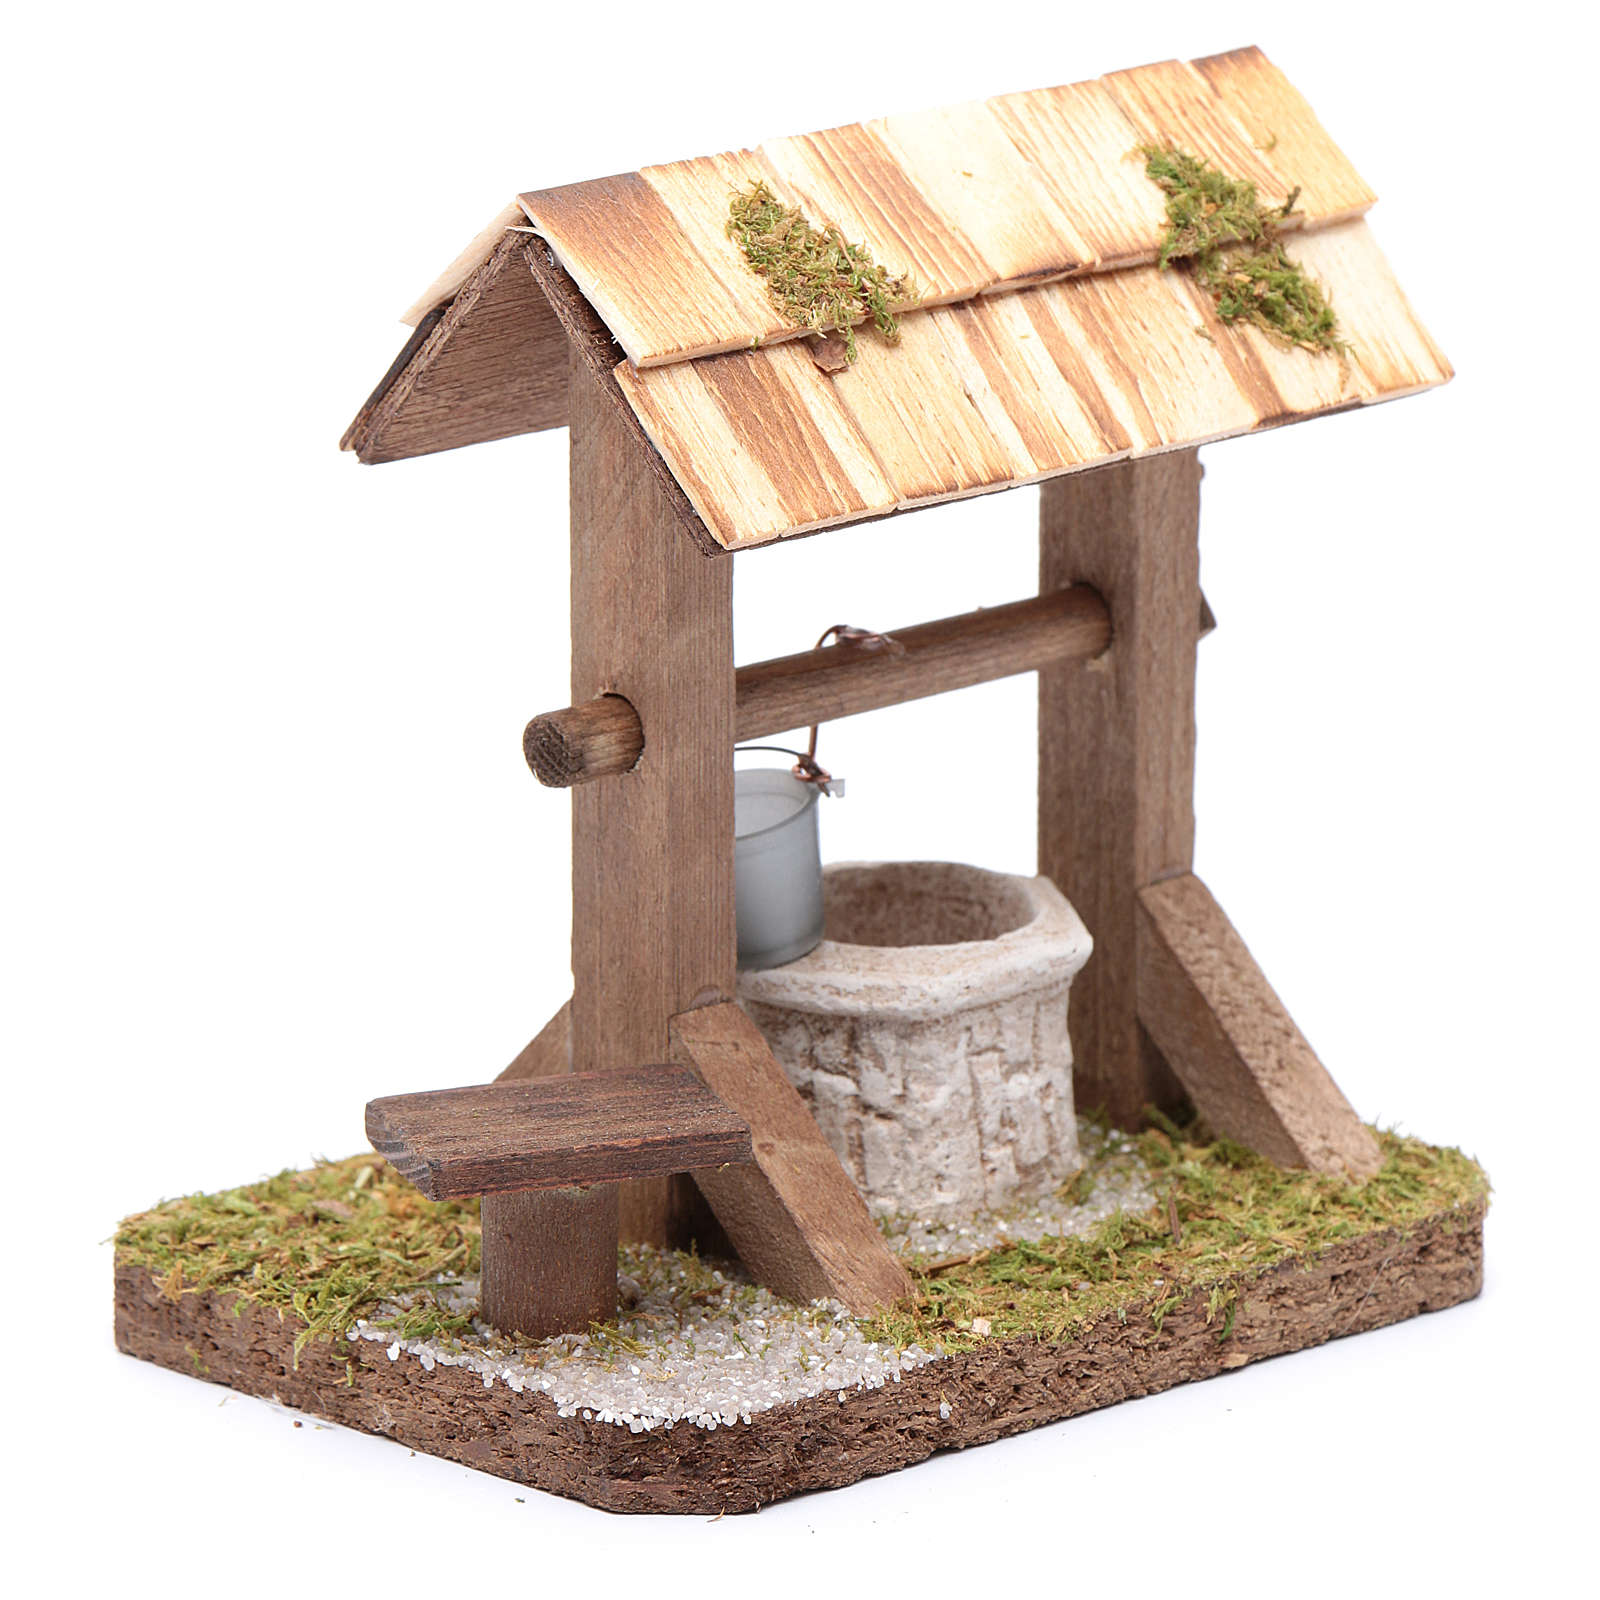 Well under canopy with movable bucket - nativity scene accessory 4